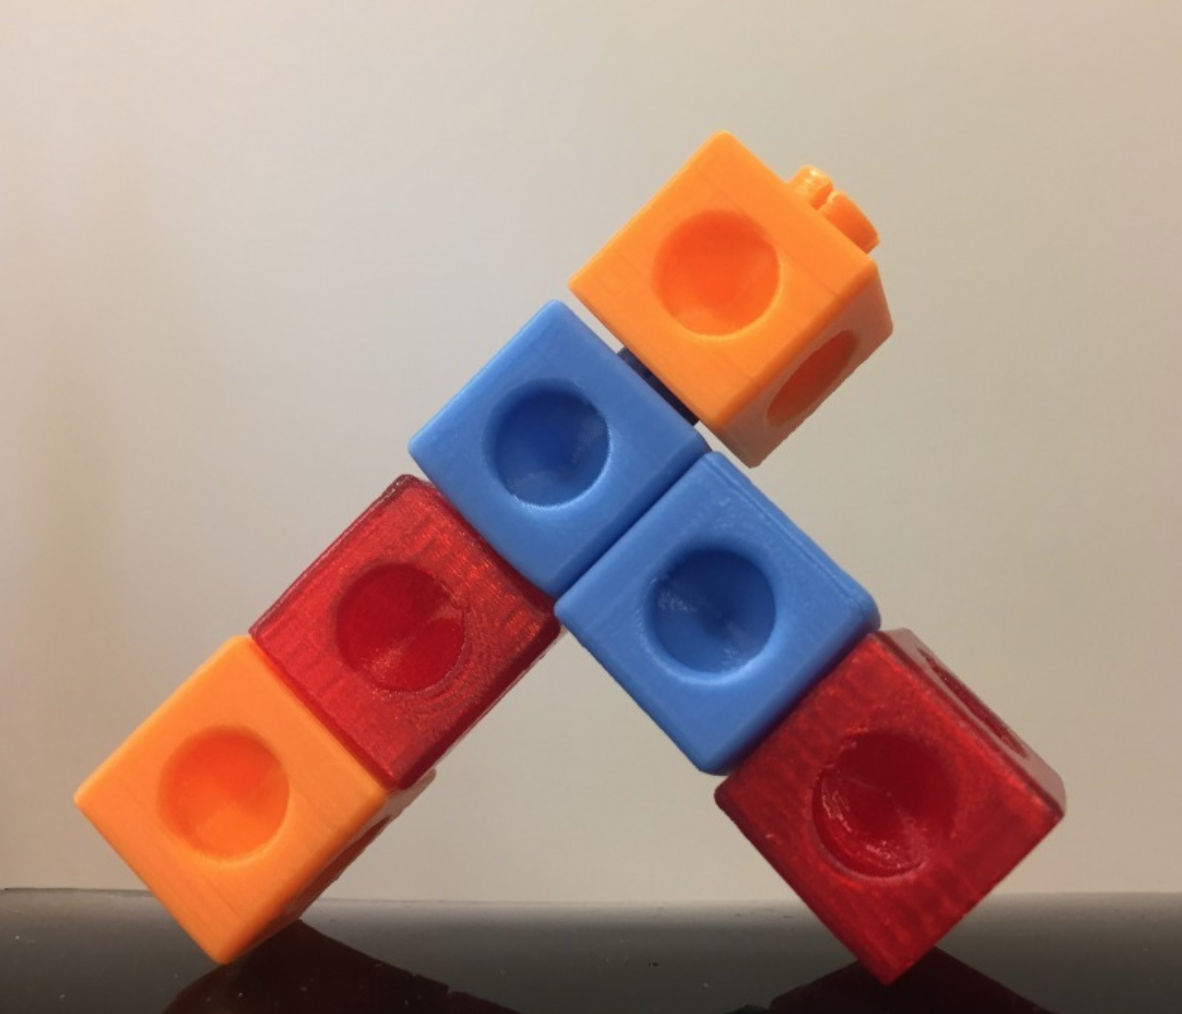 Capture d'écran 2017-12-26 à 18.51.14.png Download free STL file Snap cube, interlocking, math, snap cubes • 3D printable design, LGBU